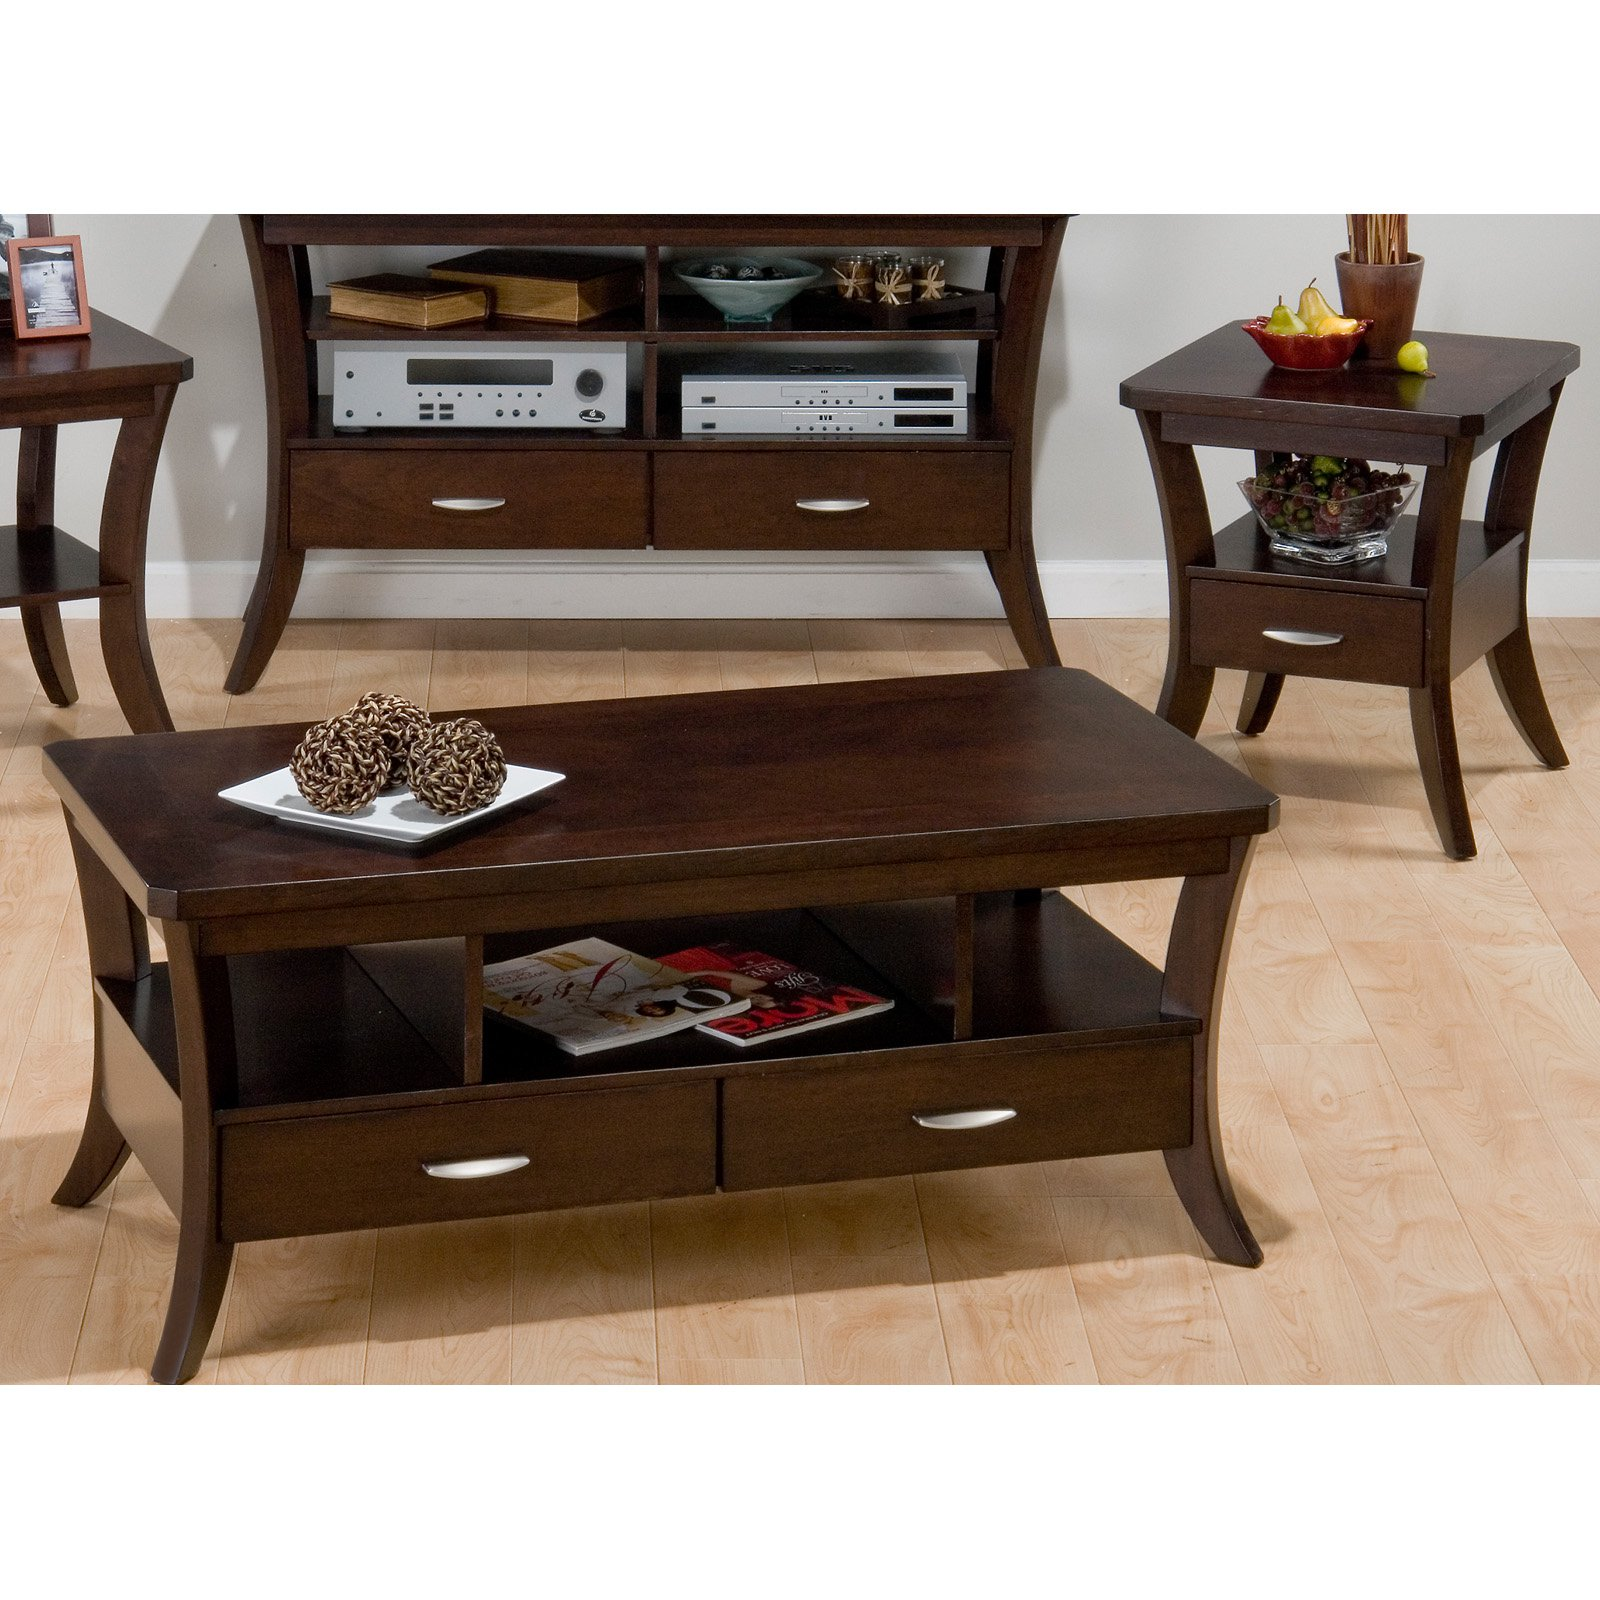 Attirant Jofran Joes Espresso Rectangular 3 Piece Coffee Table Set   Walmart.com